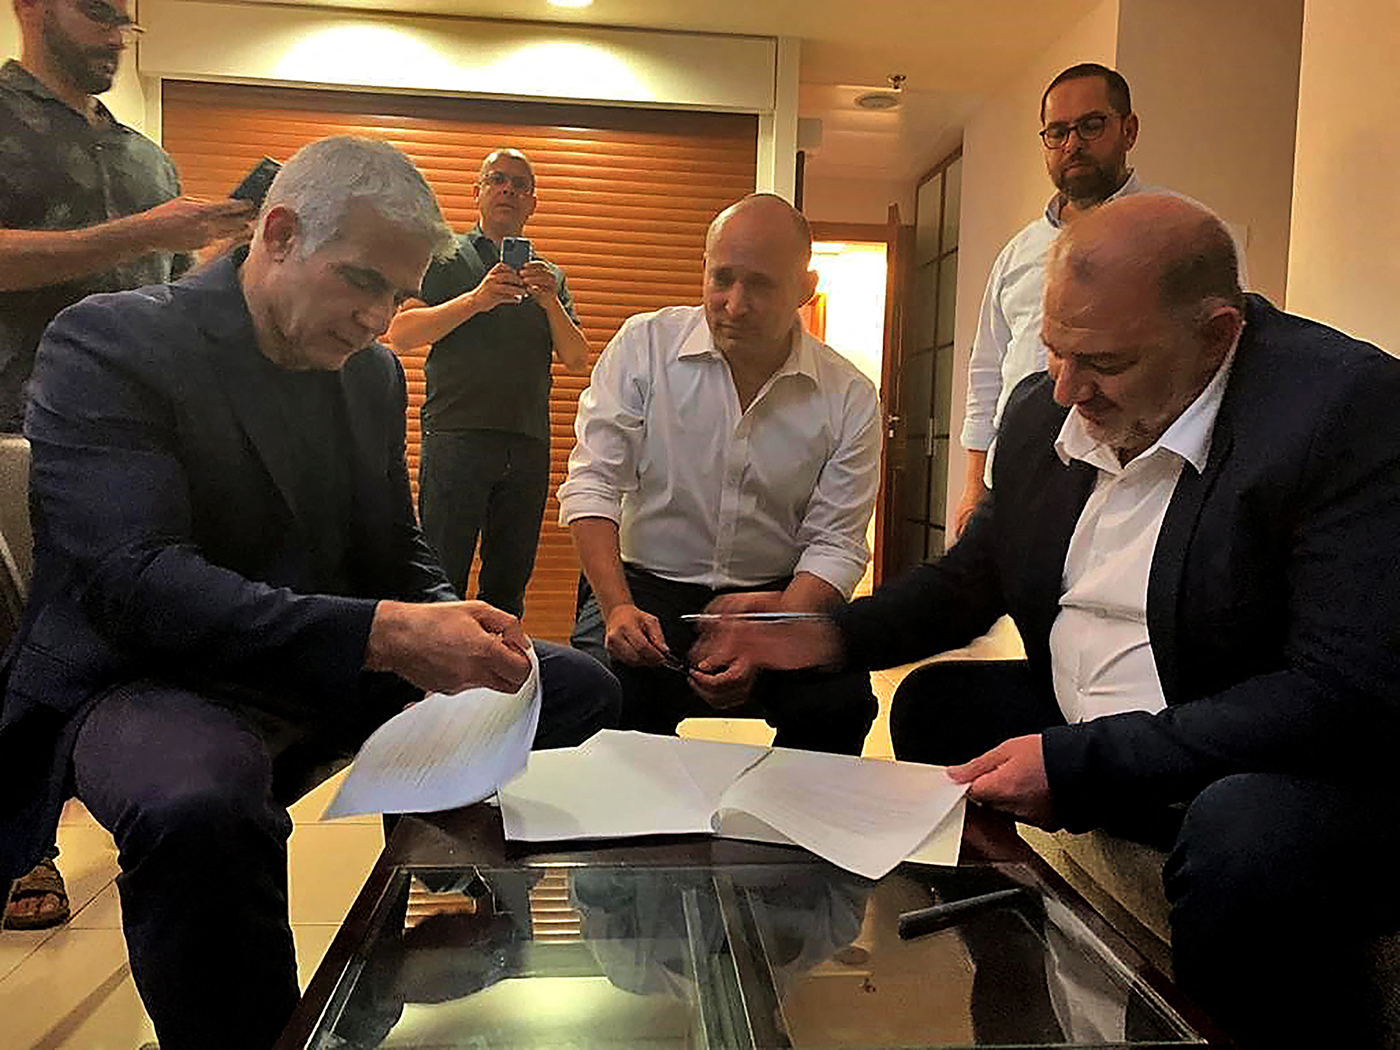 A handout picture provided by the United Arab List on June 2, 2021, shows Mansour Abbas, right, signing a coalition agreement with Israel's opposition leader Yair Lapid, left, and right-wing nationalist Naftali Bennett in Ramat Gan near the coastal city of Tel Aviv.